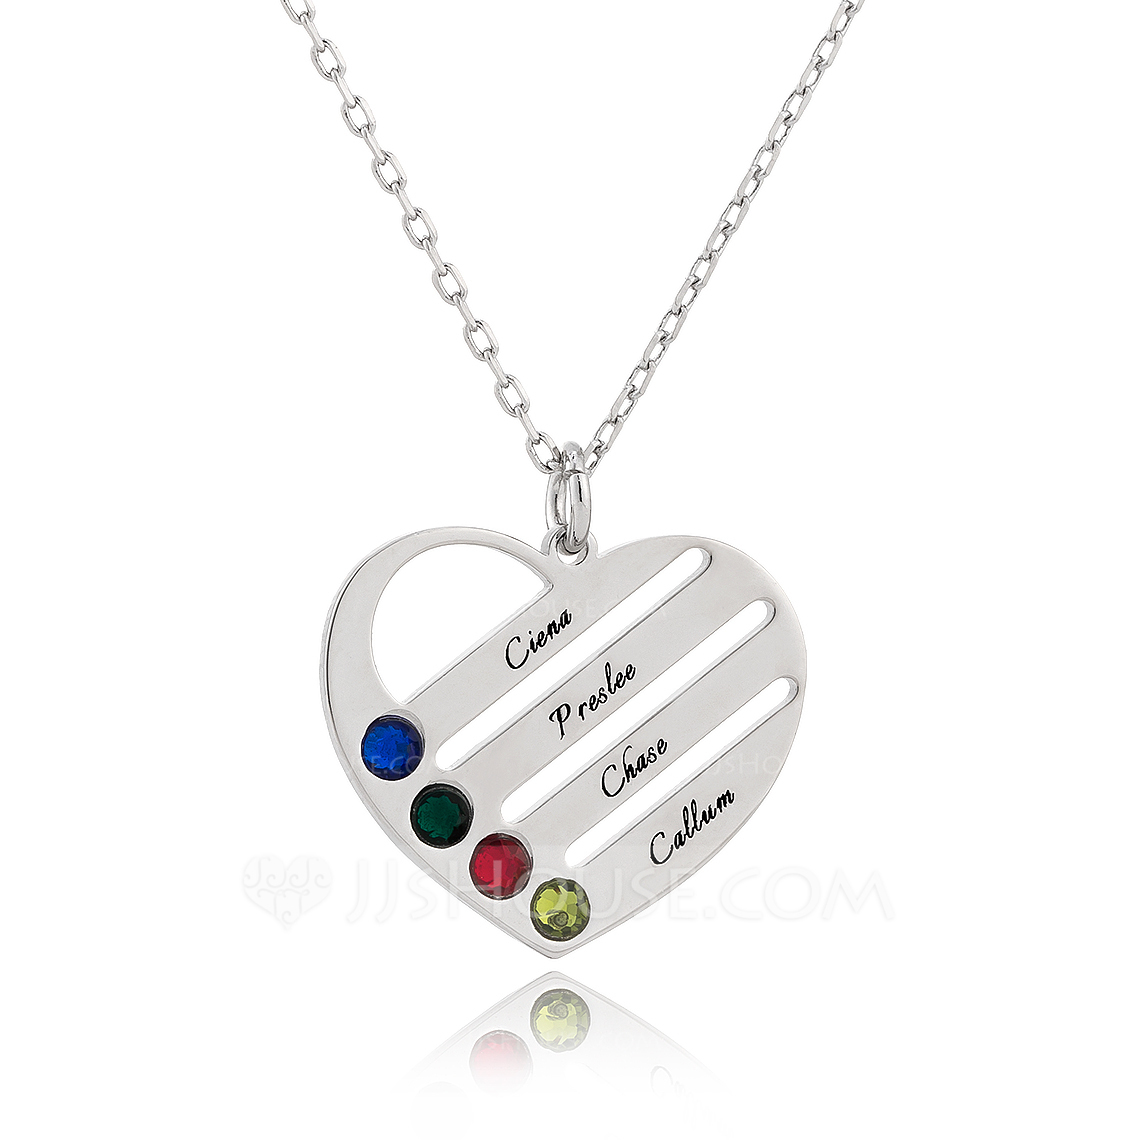 Custom Silver Engraving/Engraved Four Birthstone Necklace Family Necklace With Heart - Birthday Gifts Mother's Day Gifts